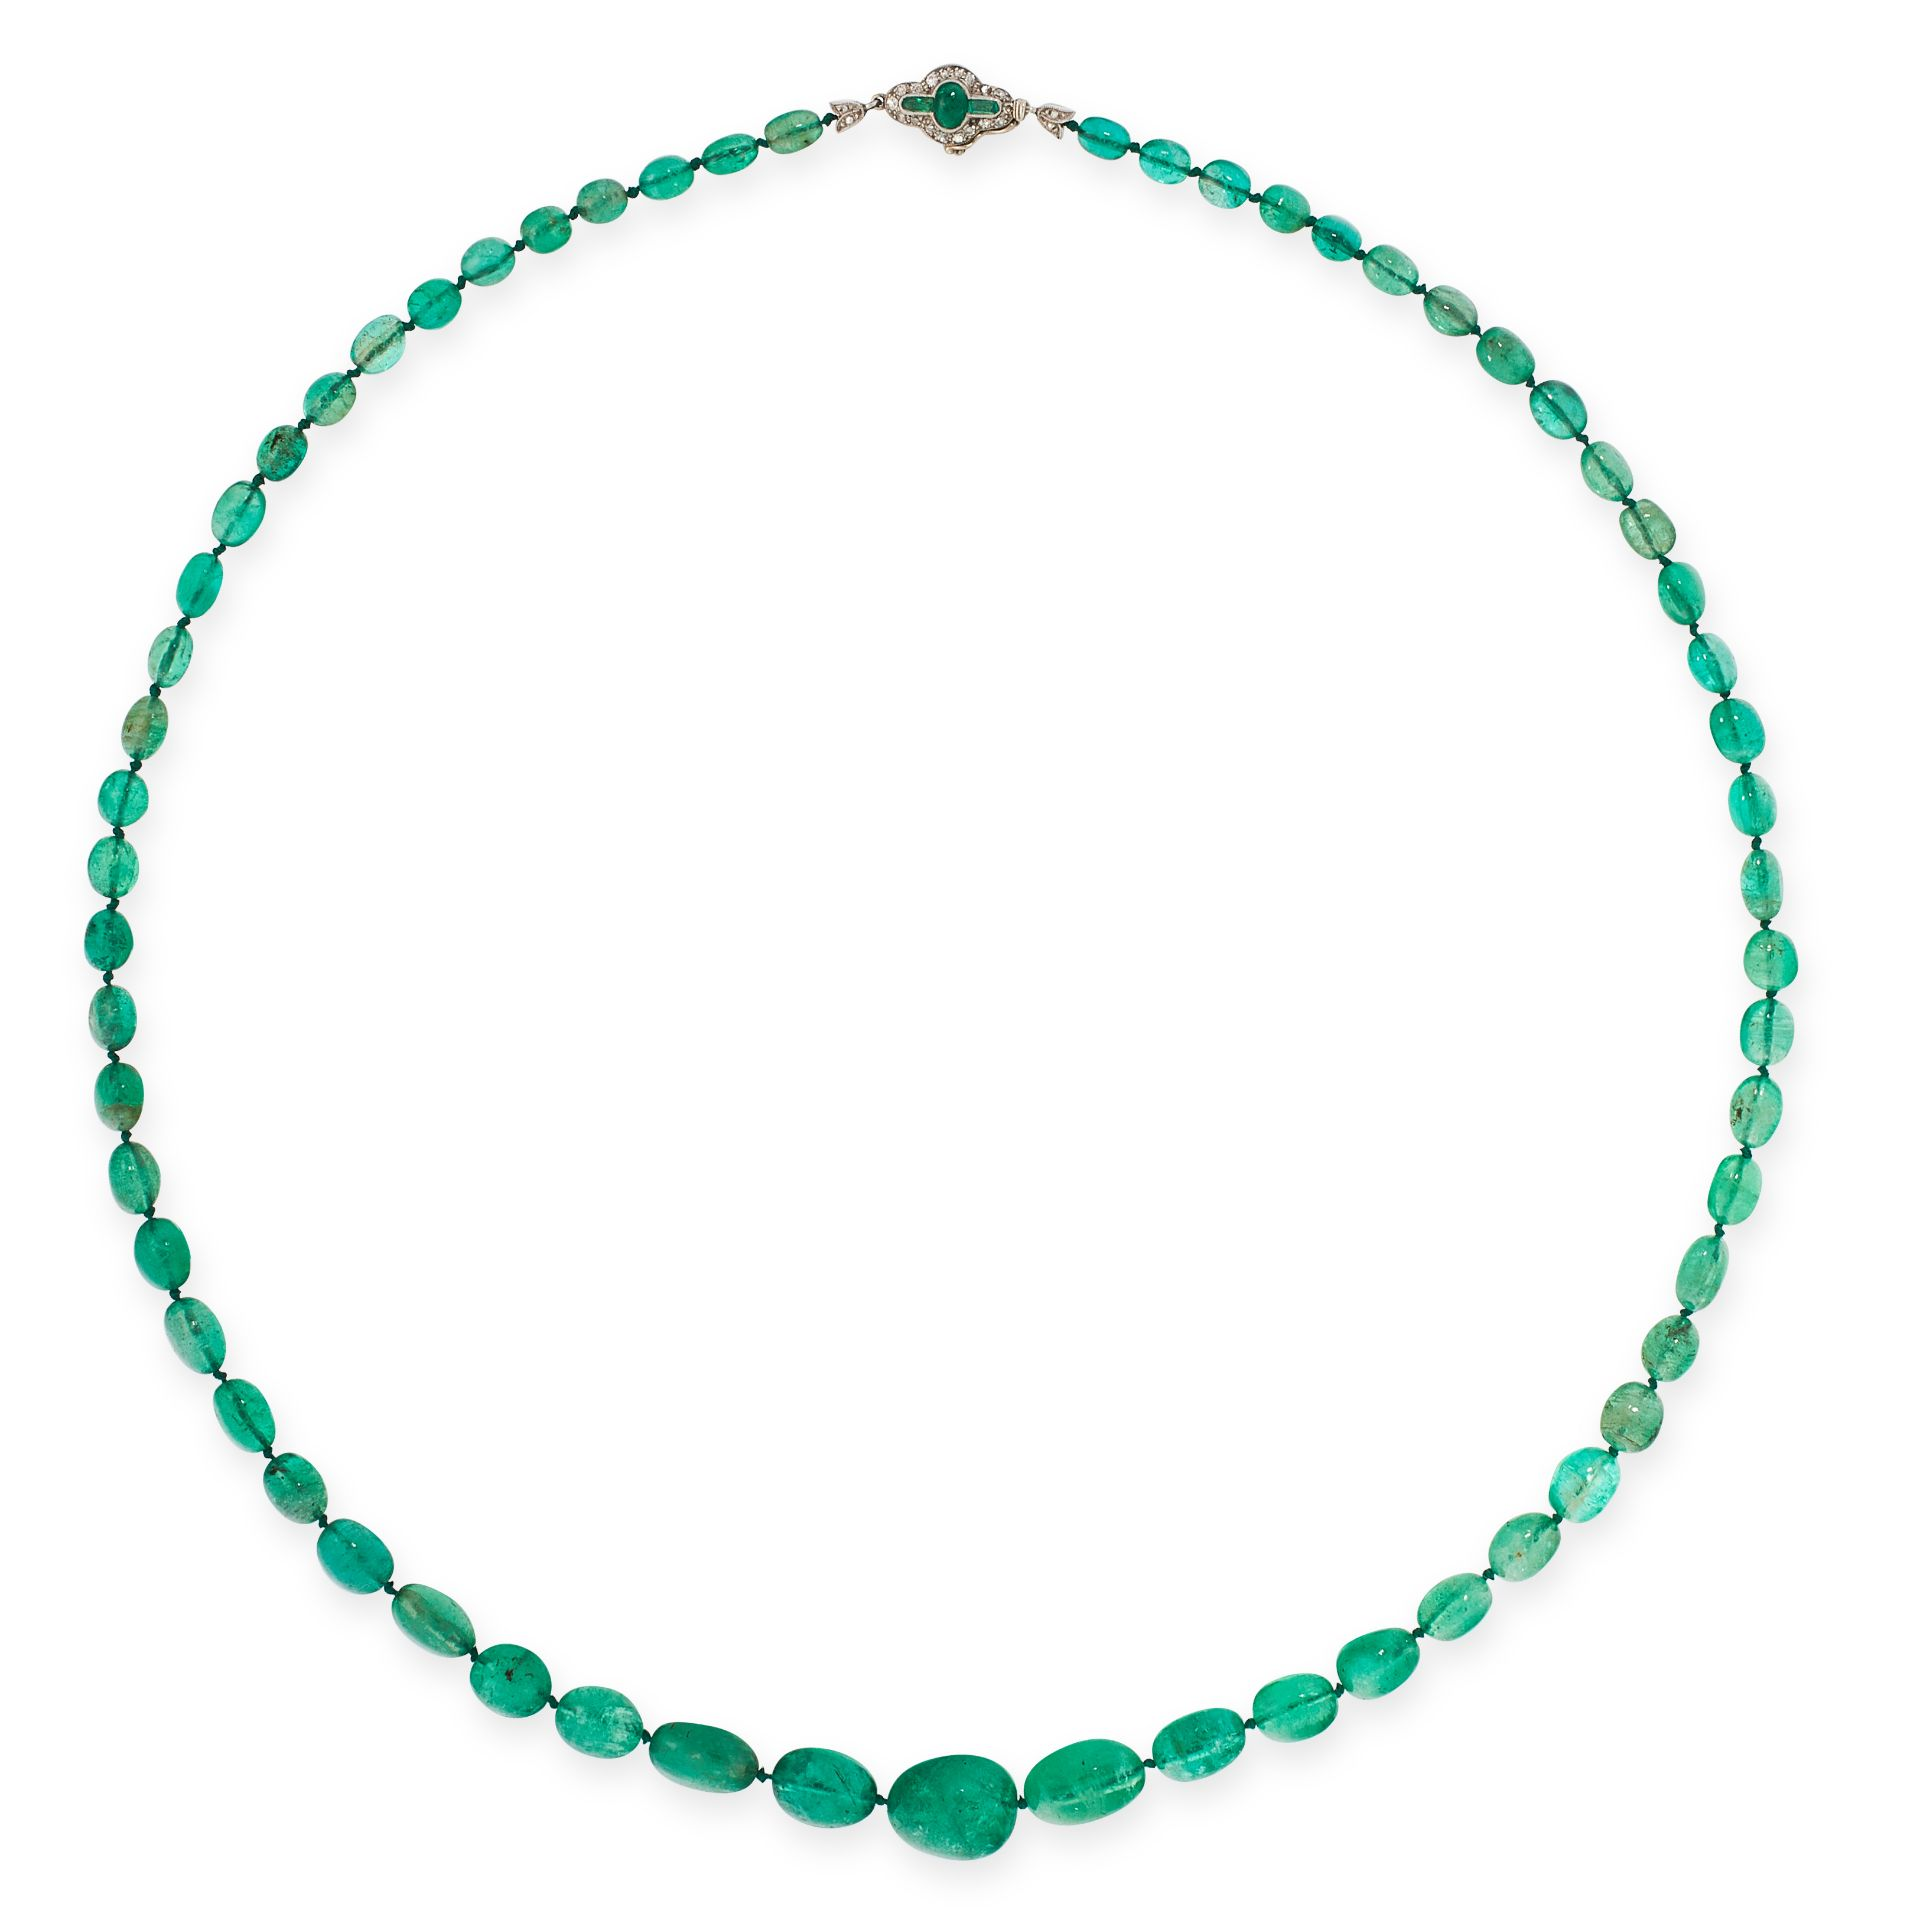 AN ART DECO EMERALD BEAD AND DIAMOND NECKLACE in white gold, comprising a single row of sixty-one